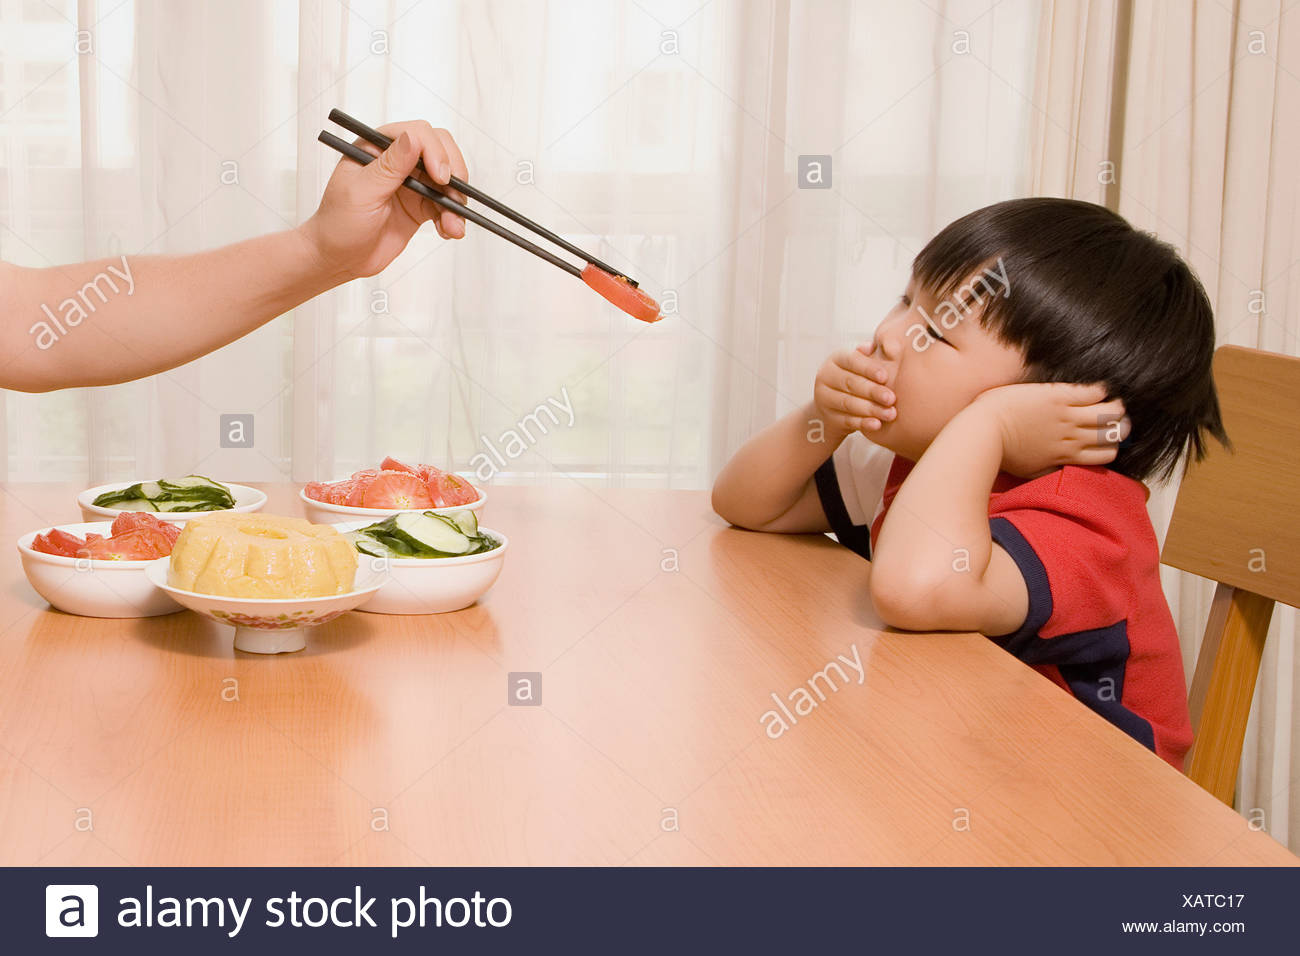 Person's hand holding chopsticks and feeding a boy - Stock Image